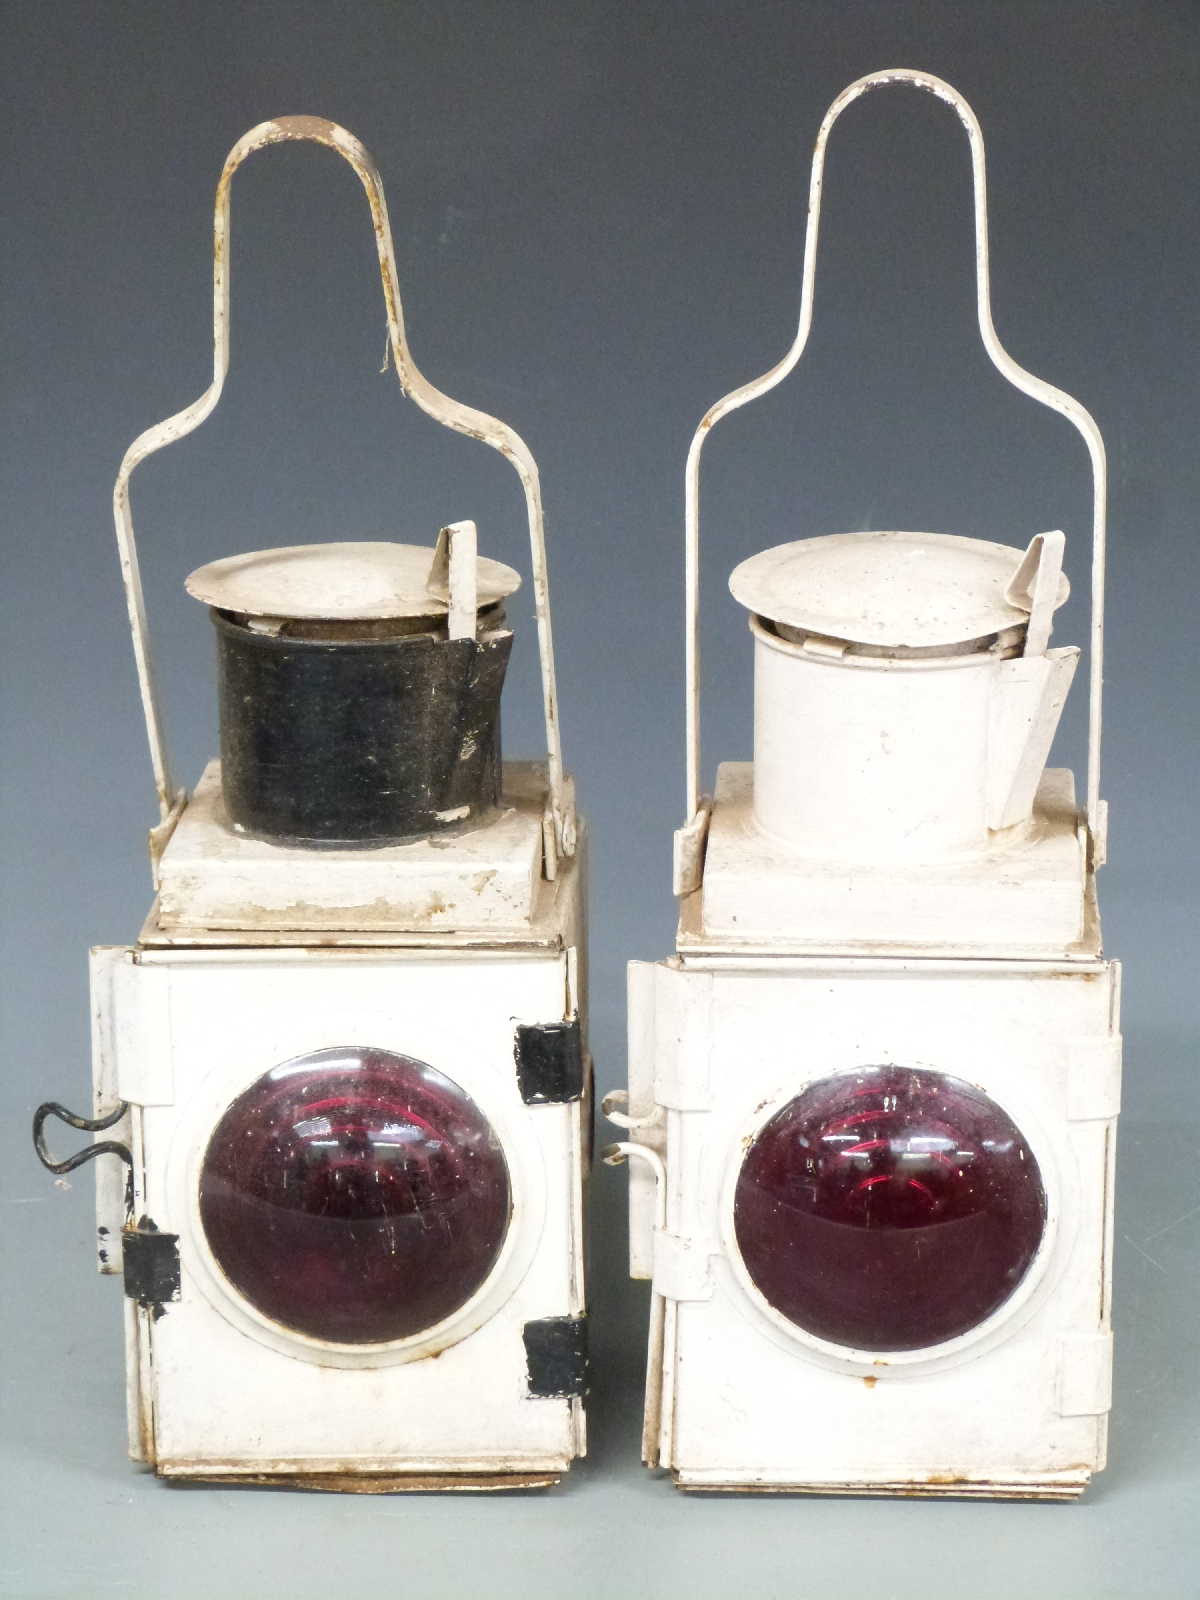 Lot 12 - Two railway or similar brake or tail lamps, height 52cm